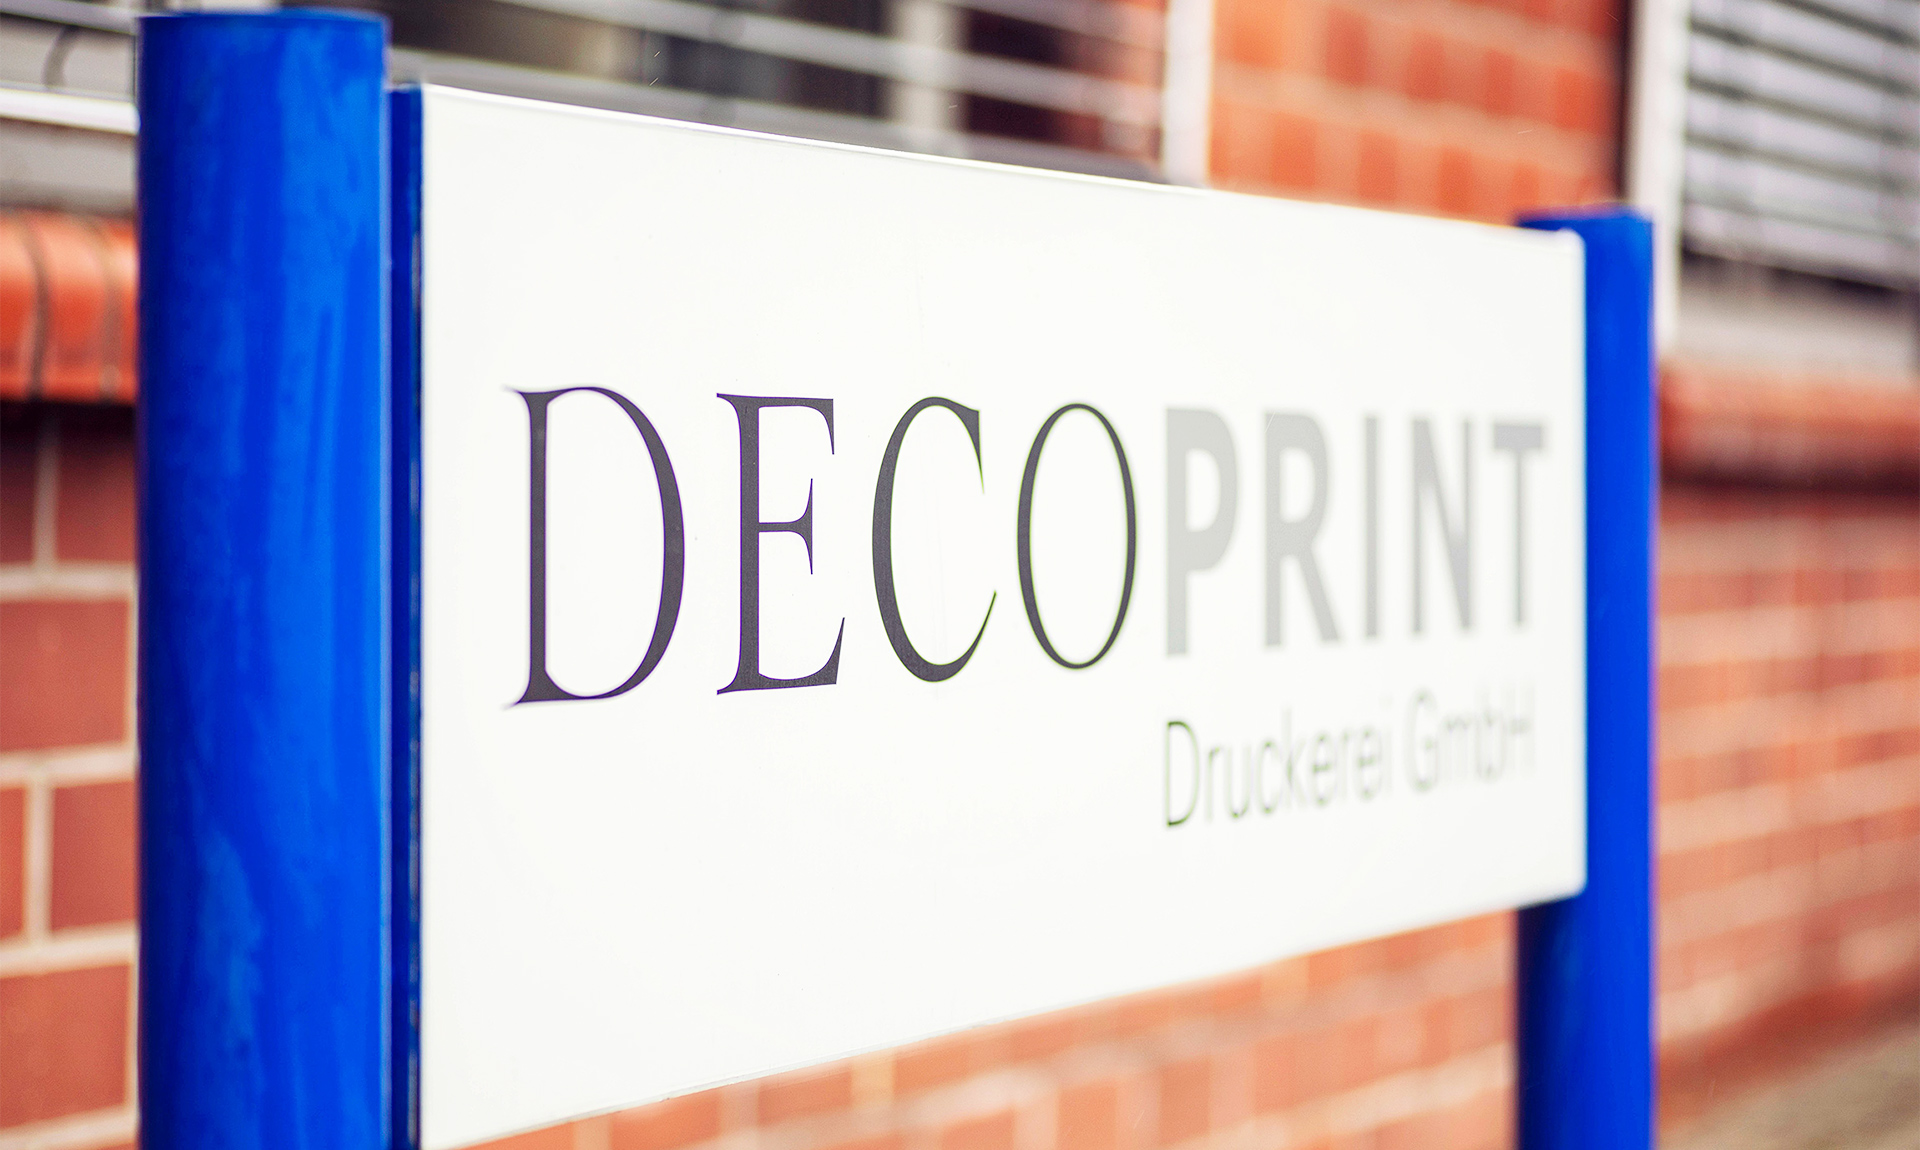 Decoprint Servietten Druckerei